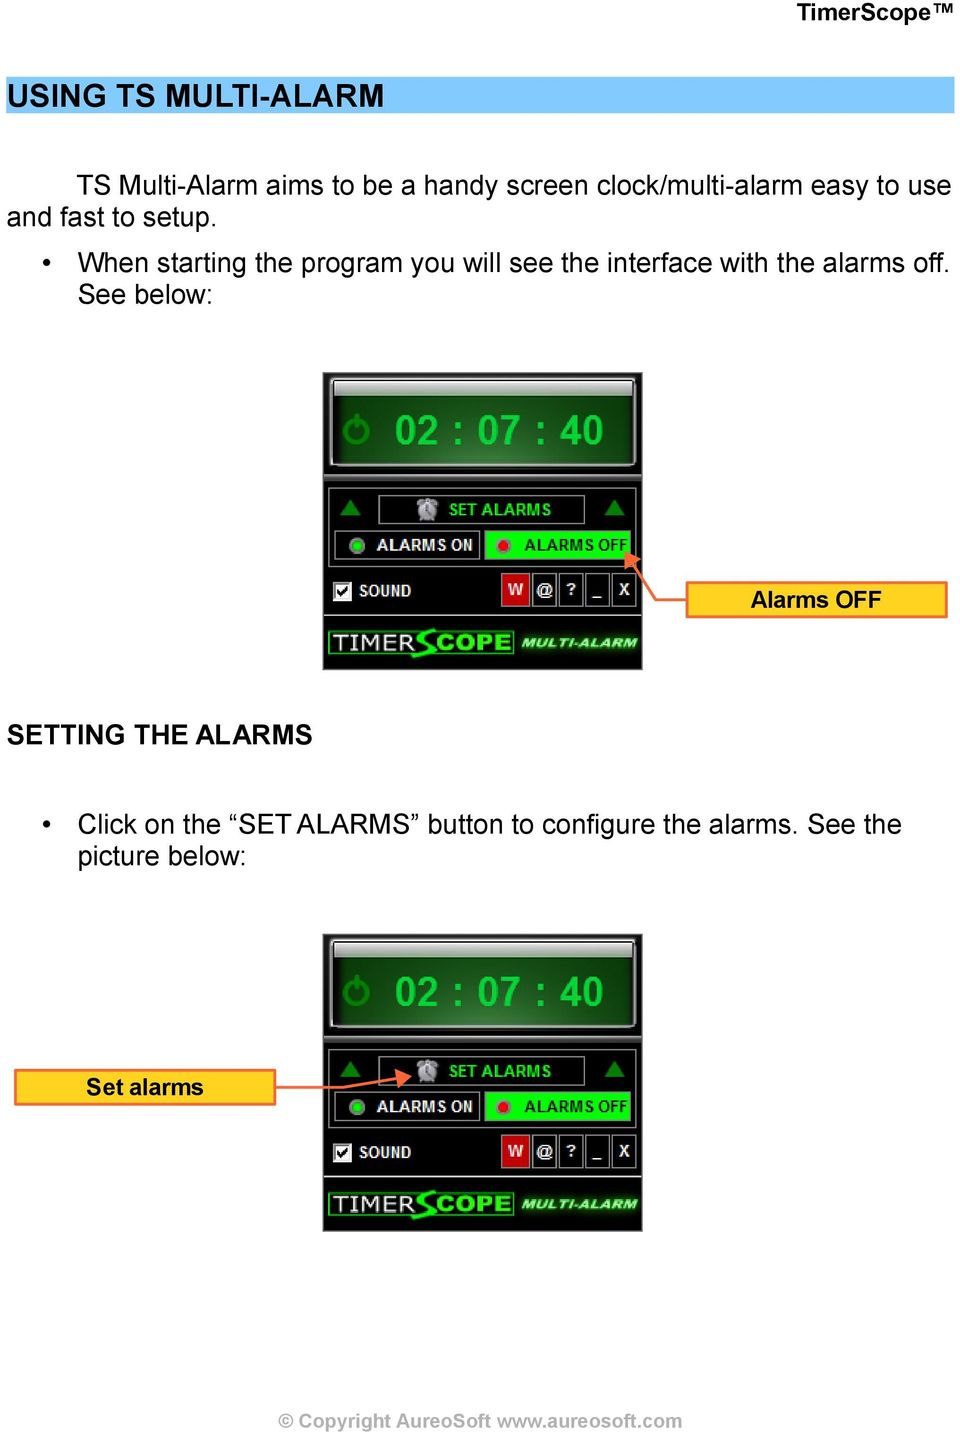 When starting the program you will see the interface with the alarms off.